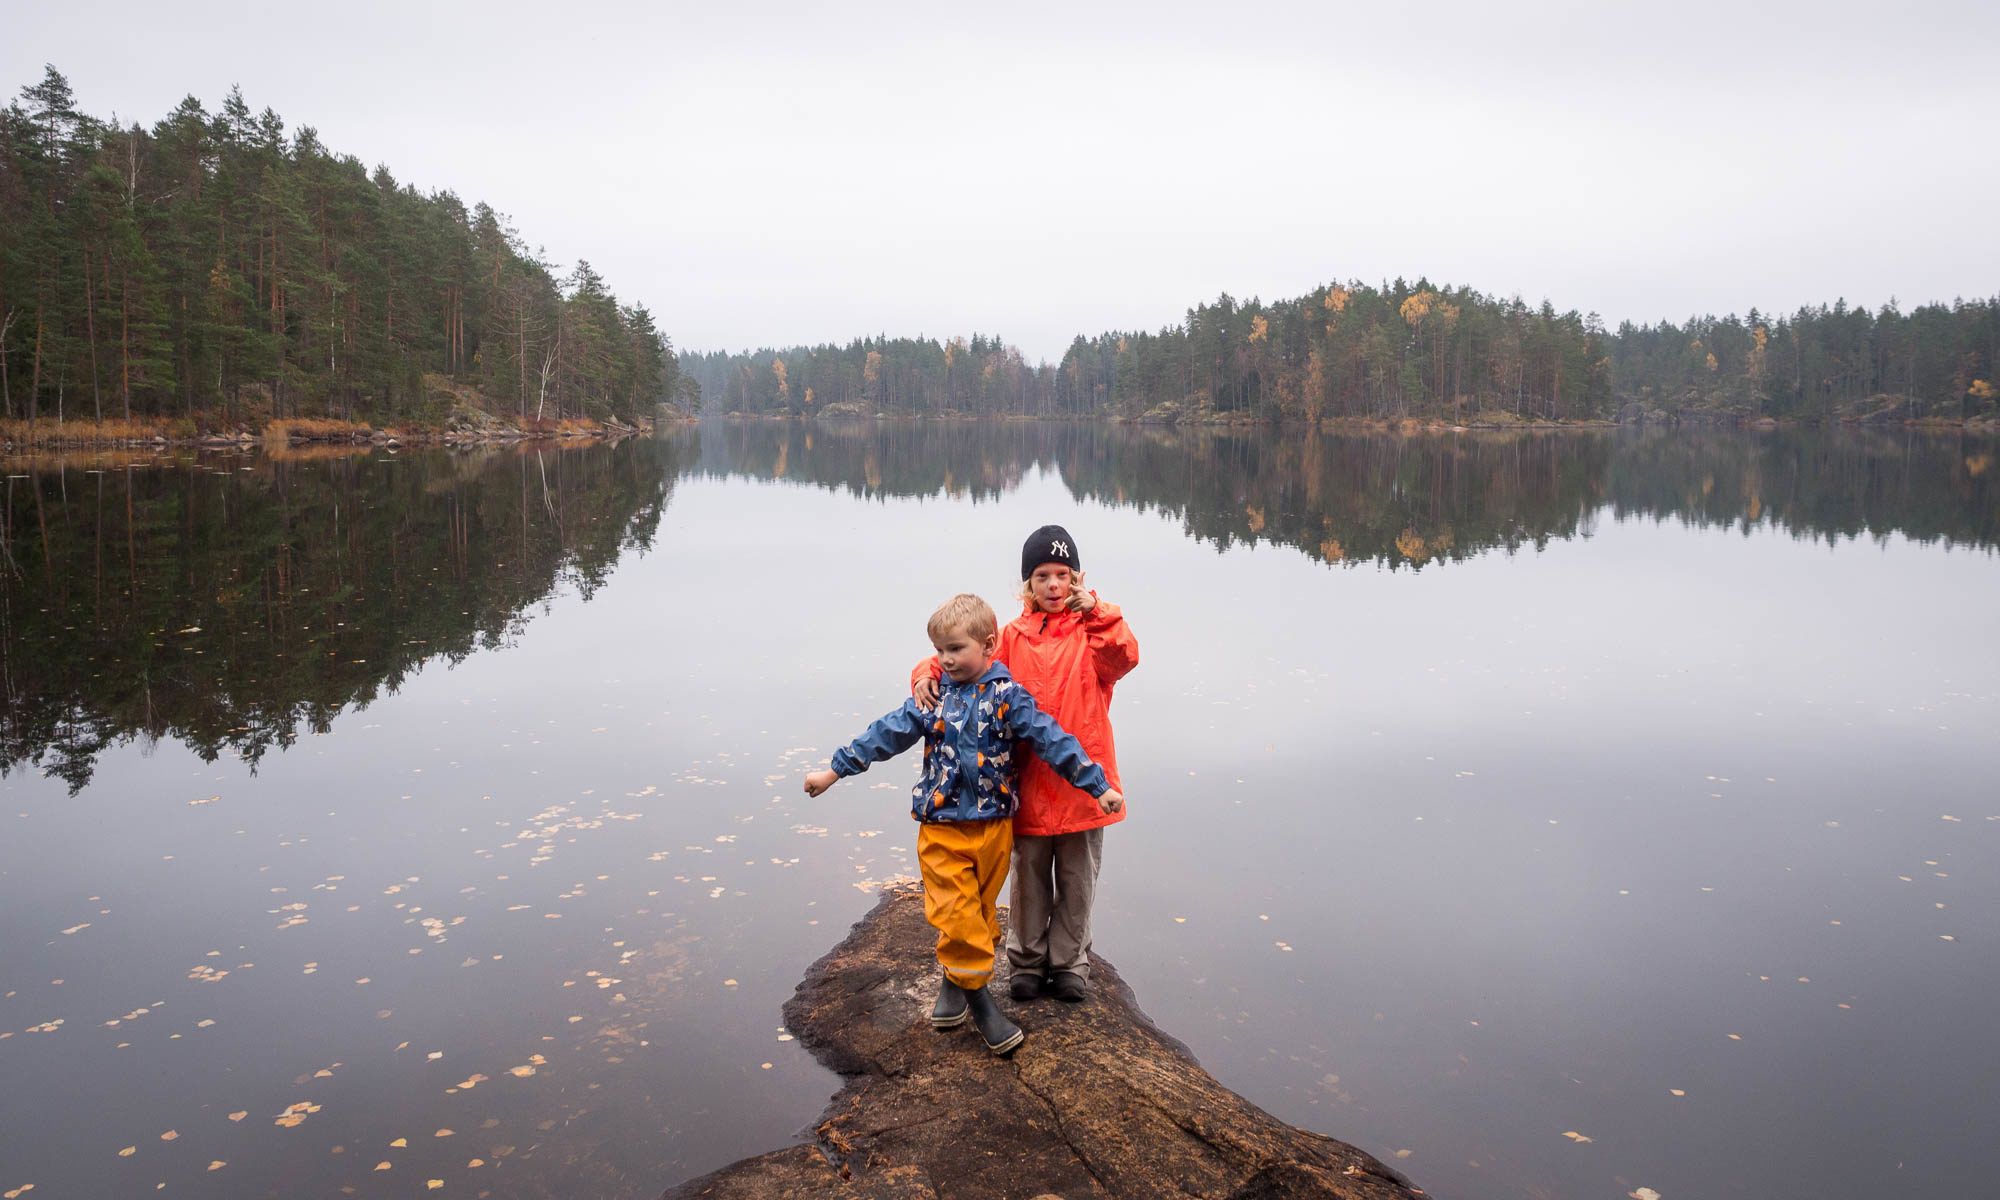 Nuuksio National Park in fall, in October. Hiking with children. Finnish nature near Helsinki, Finland.